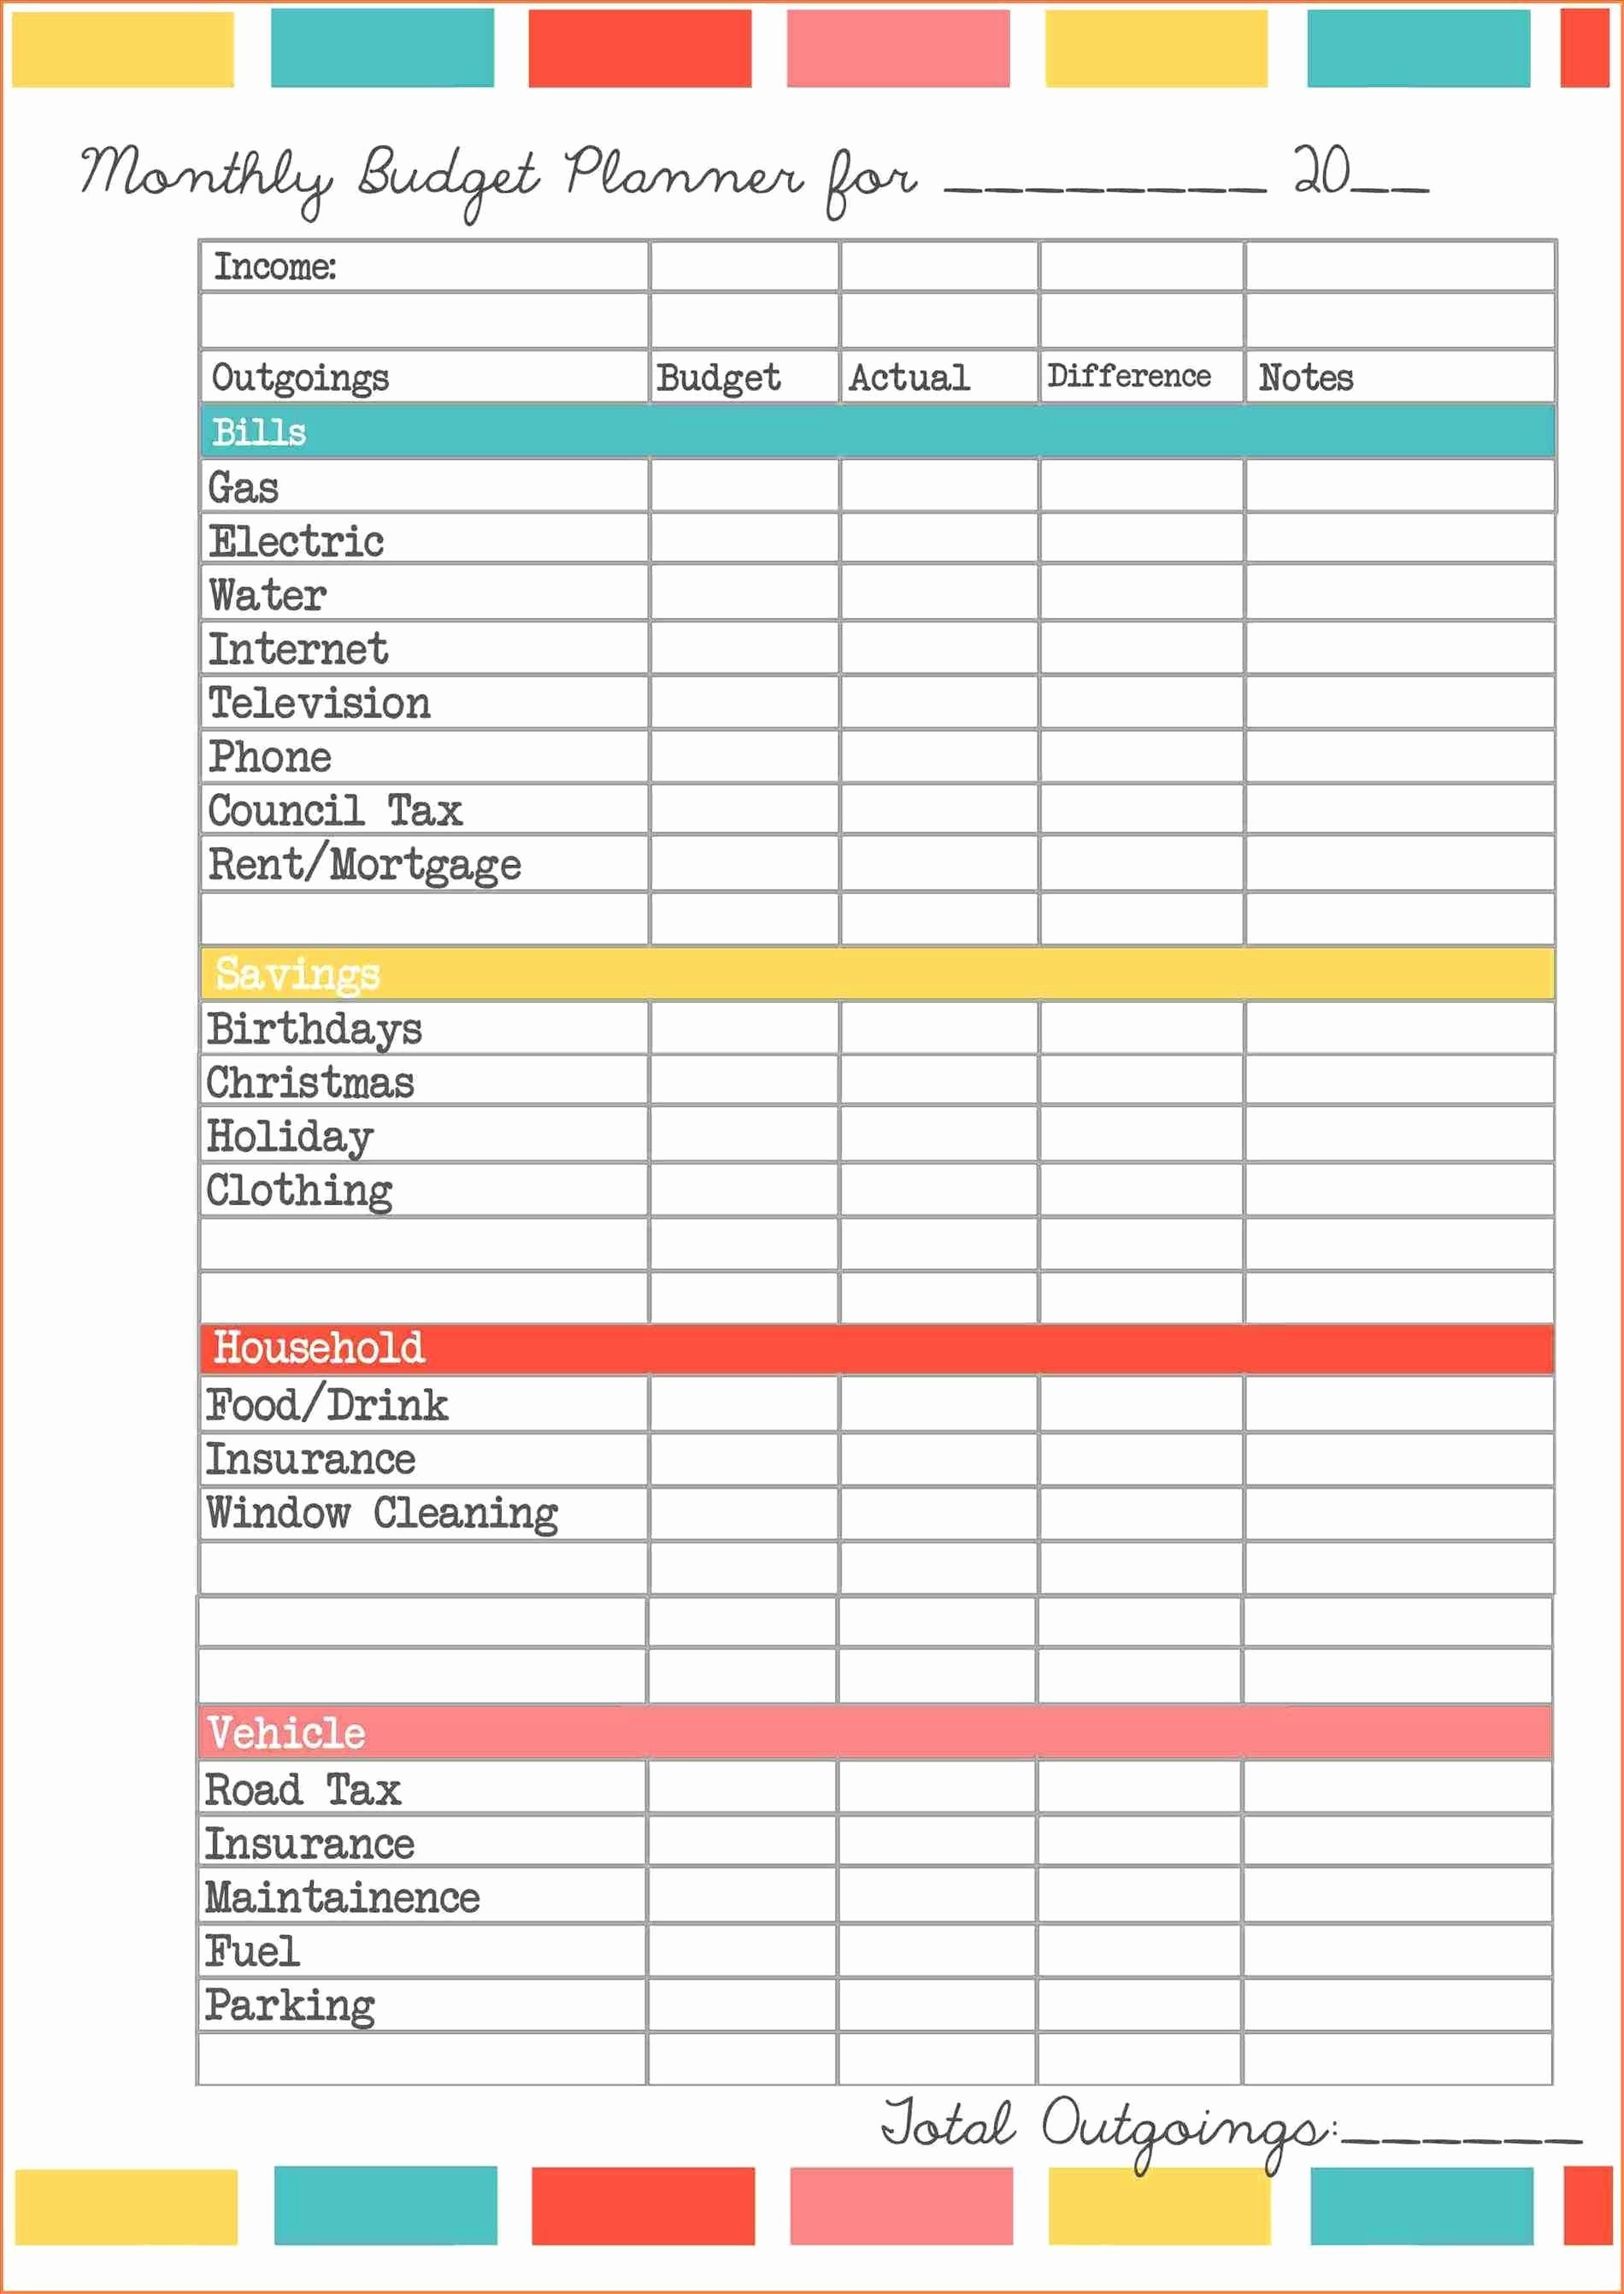 Accounting Spreadsheet Template Uk For Small Business Accounting Spreadsheet Invoice Template Uk Free